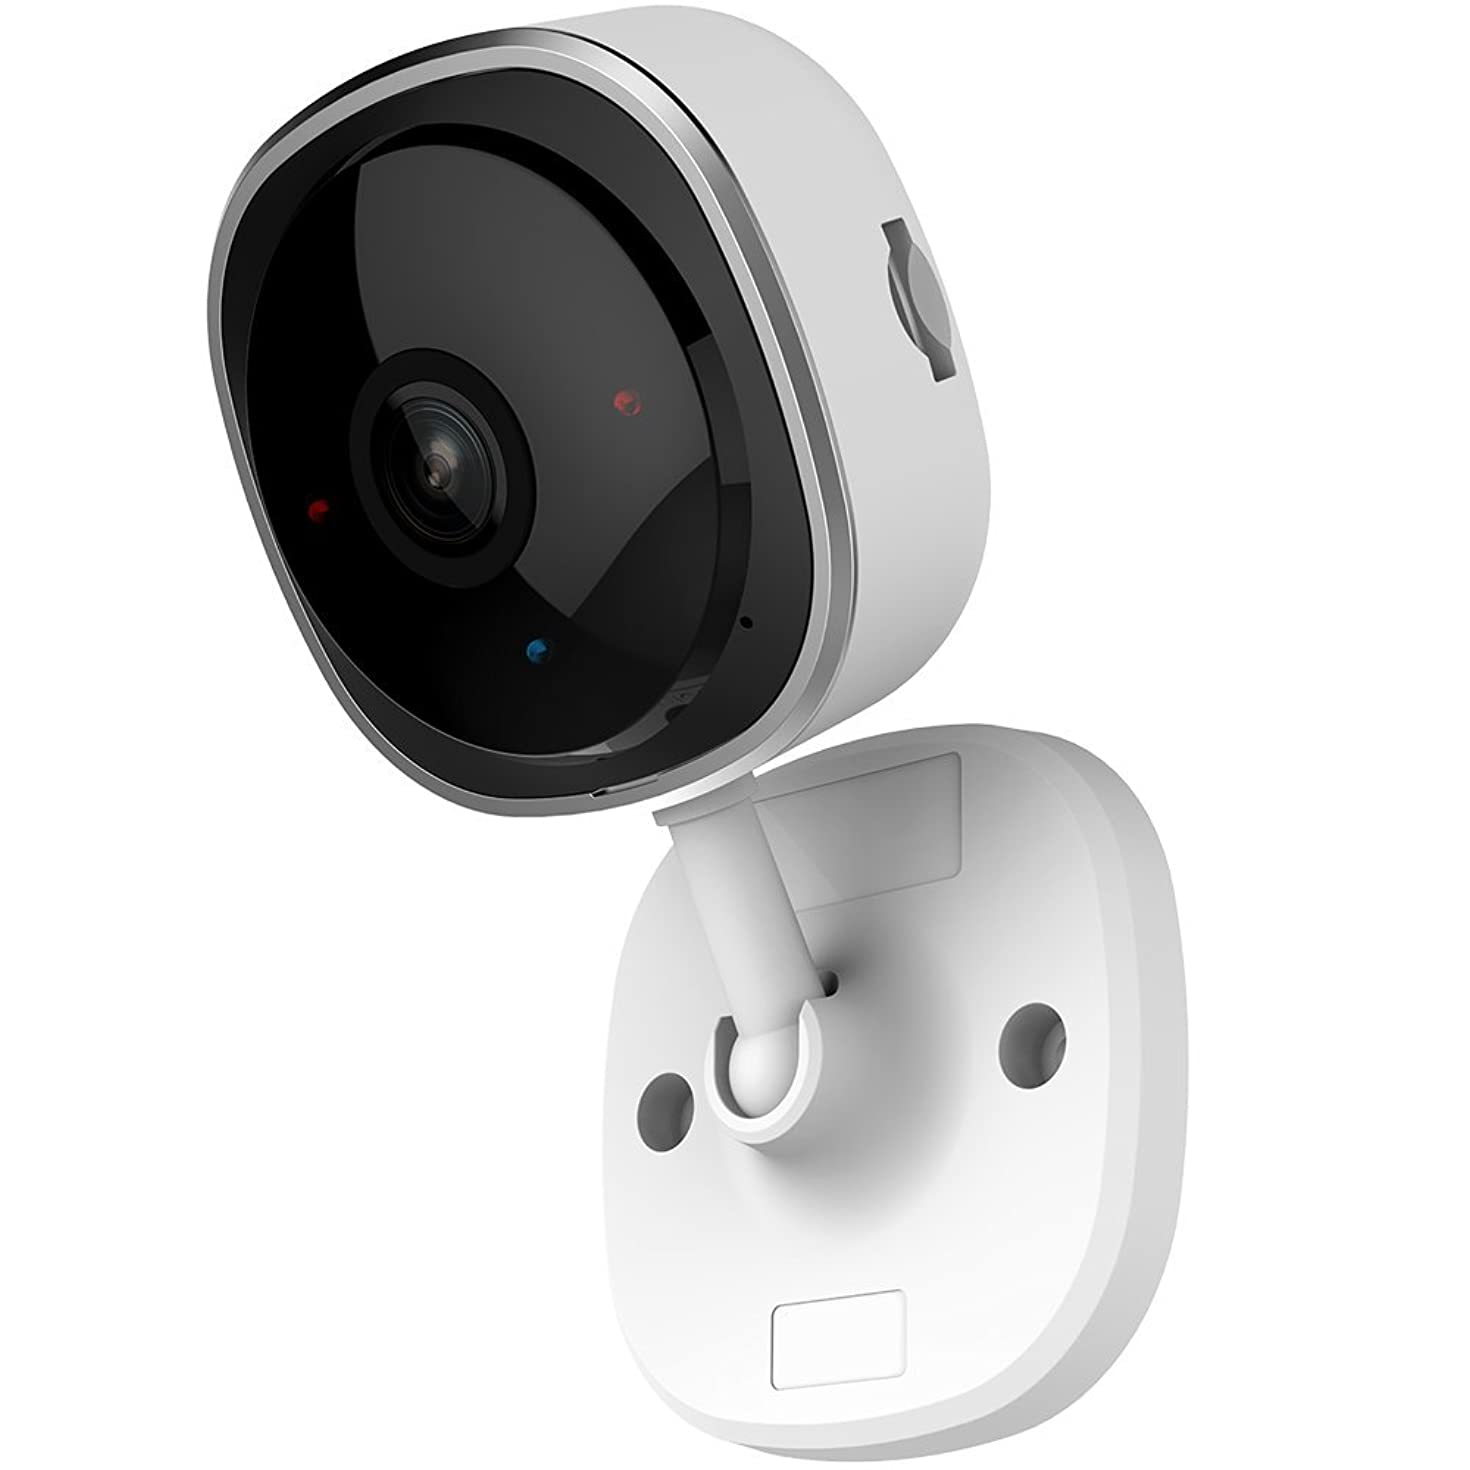 Jasal Home Wireless Security Camera,Surveillance Camera, Smart WiFi 1080P HD Mini Indoor 180 Degree Panoramic IP Dome Camera, Monitoring System, Cloud Service Available